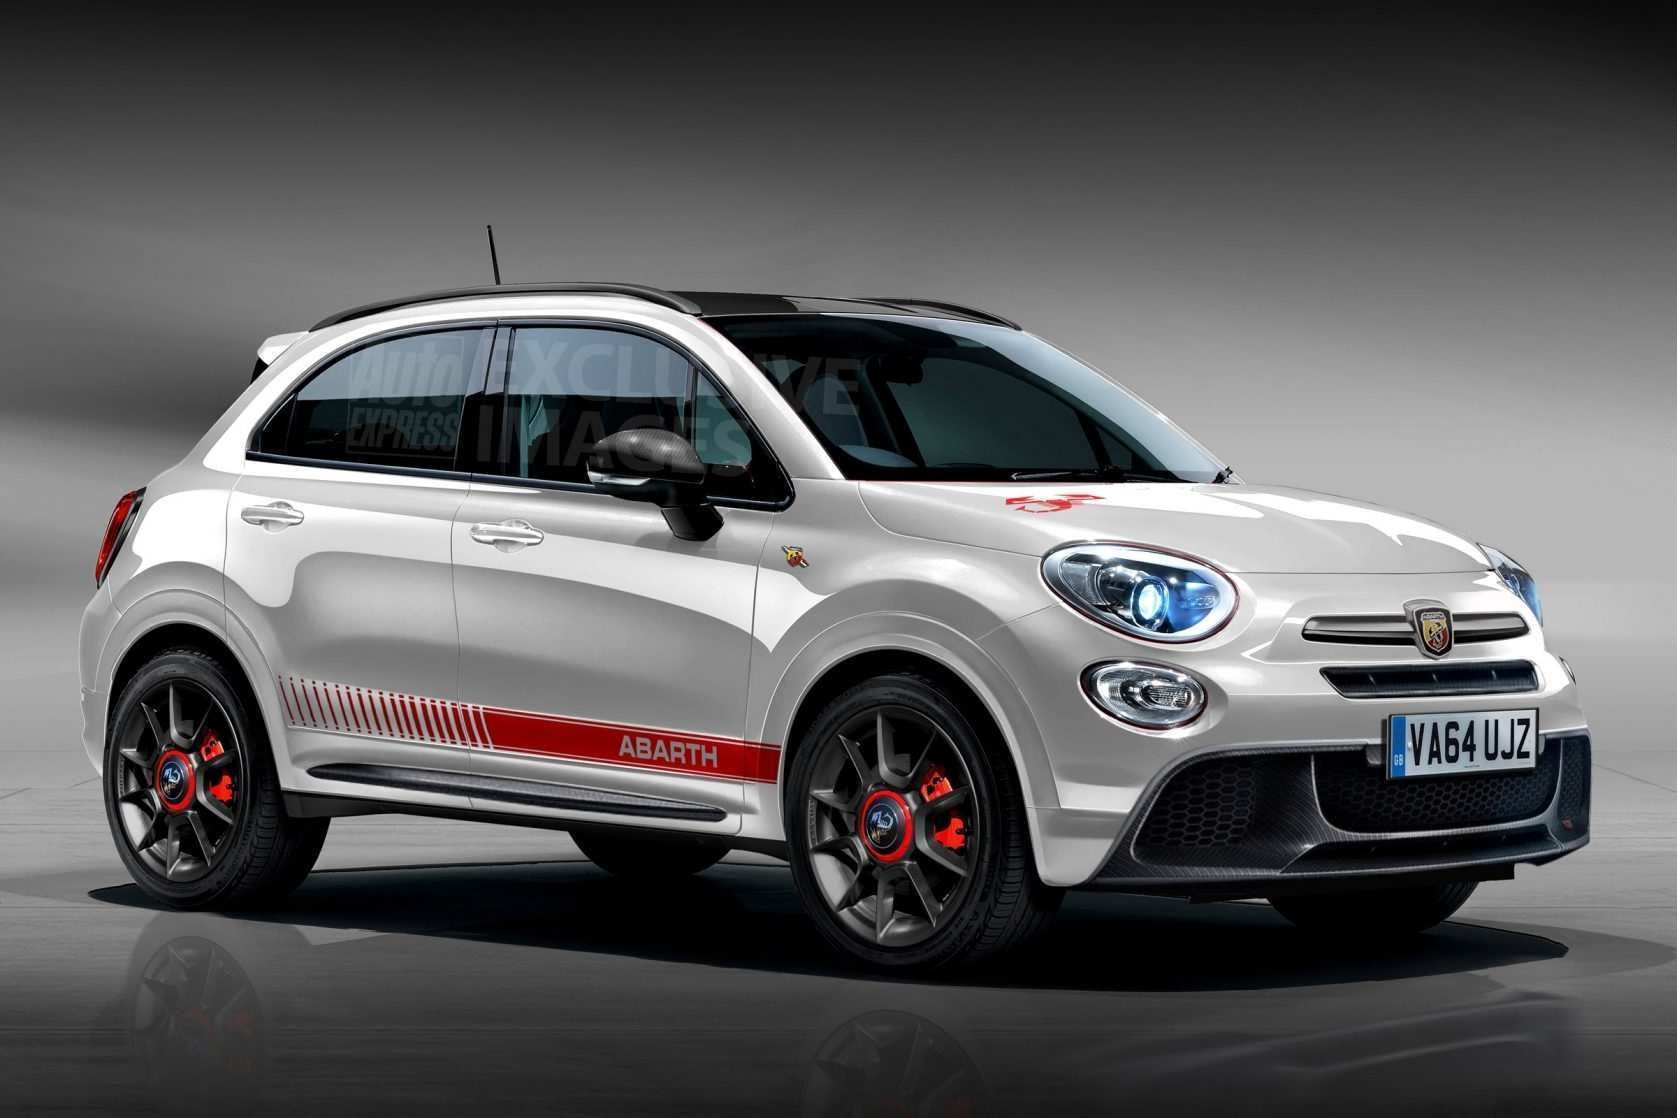 41 The 2019 Fiat Abarth 500 Concept with 2019 Fiat Abarth 500